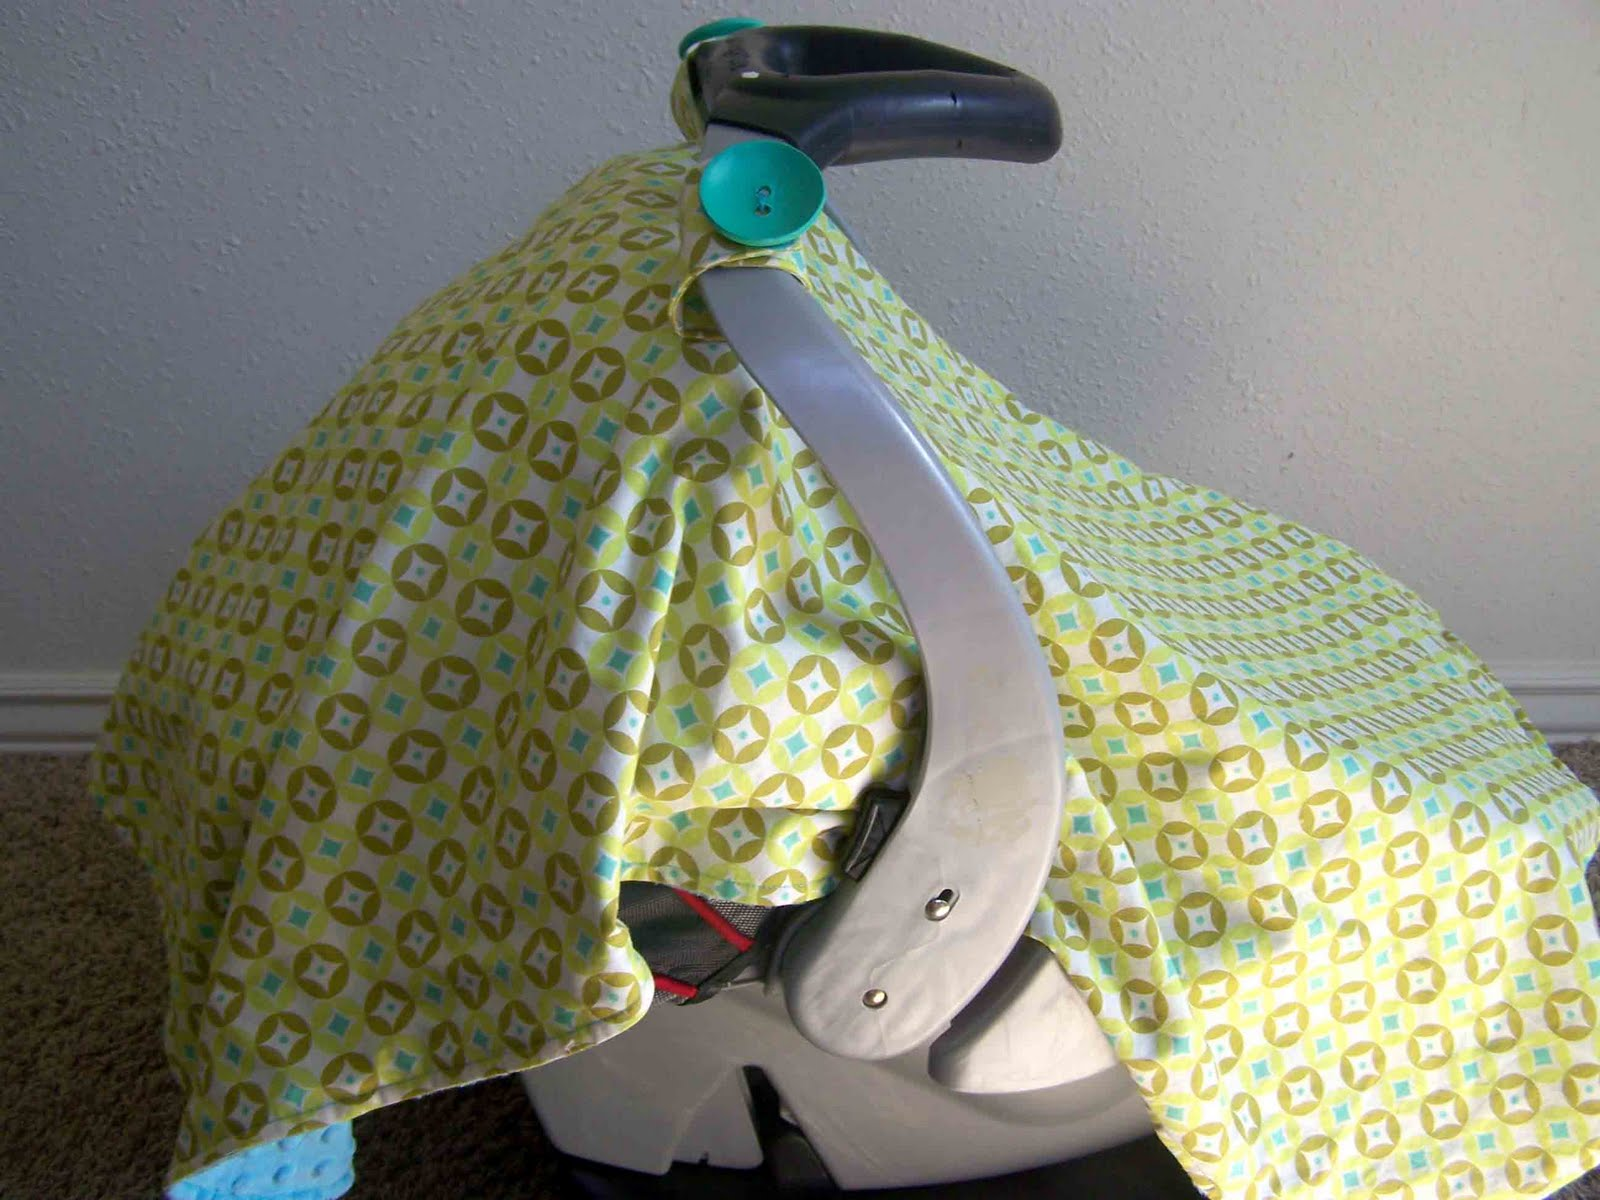 Made By Me. Shared With You.: Infant Car Seat Canopy